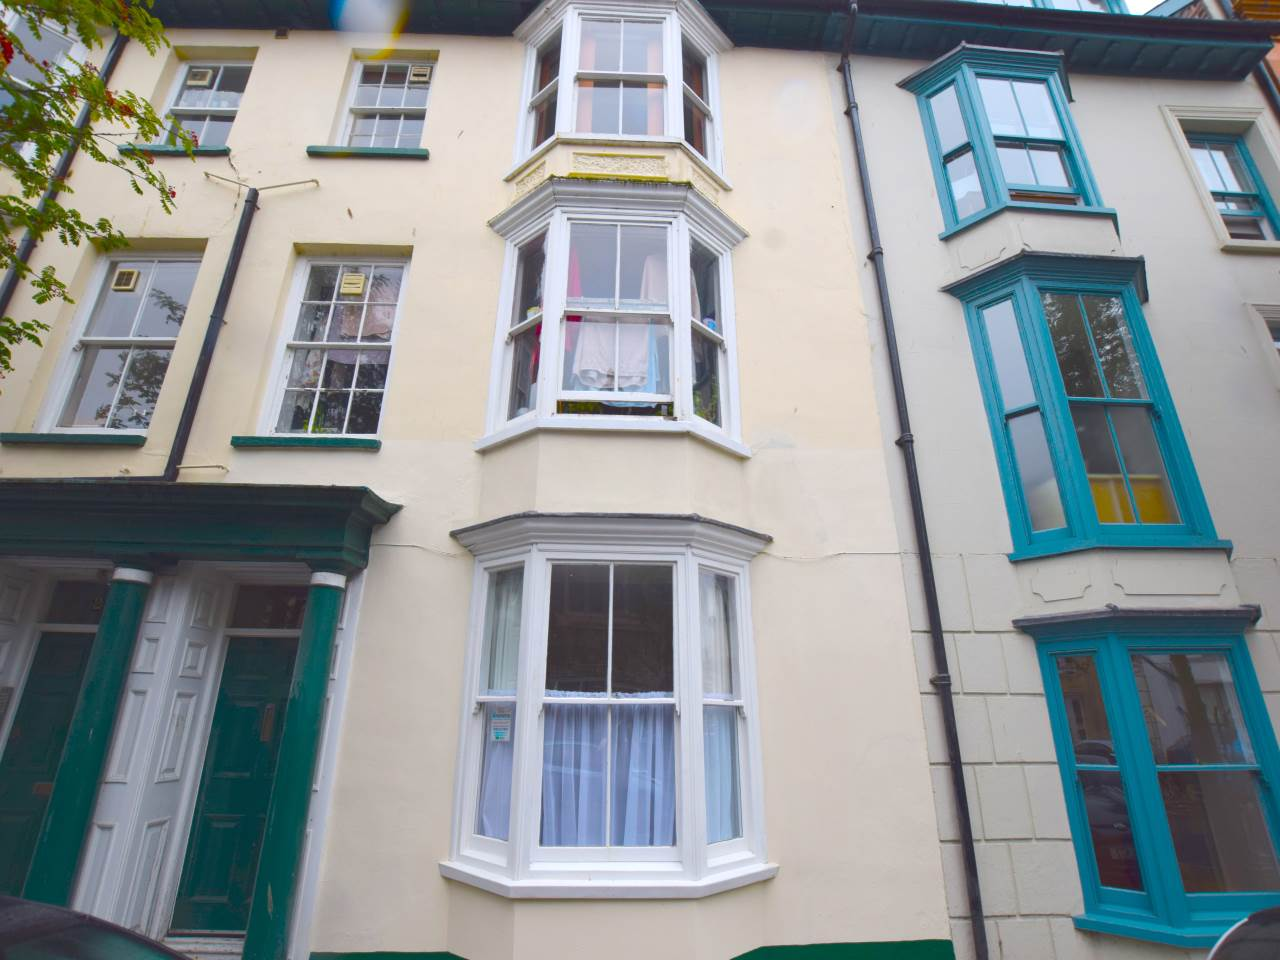 2 bed flat to rent in Aberystwyth, Ceredigion, SY23